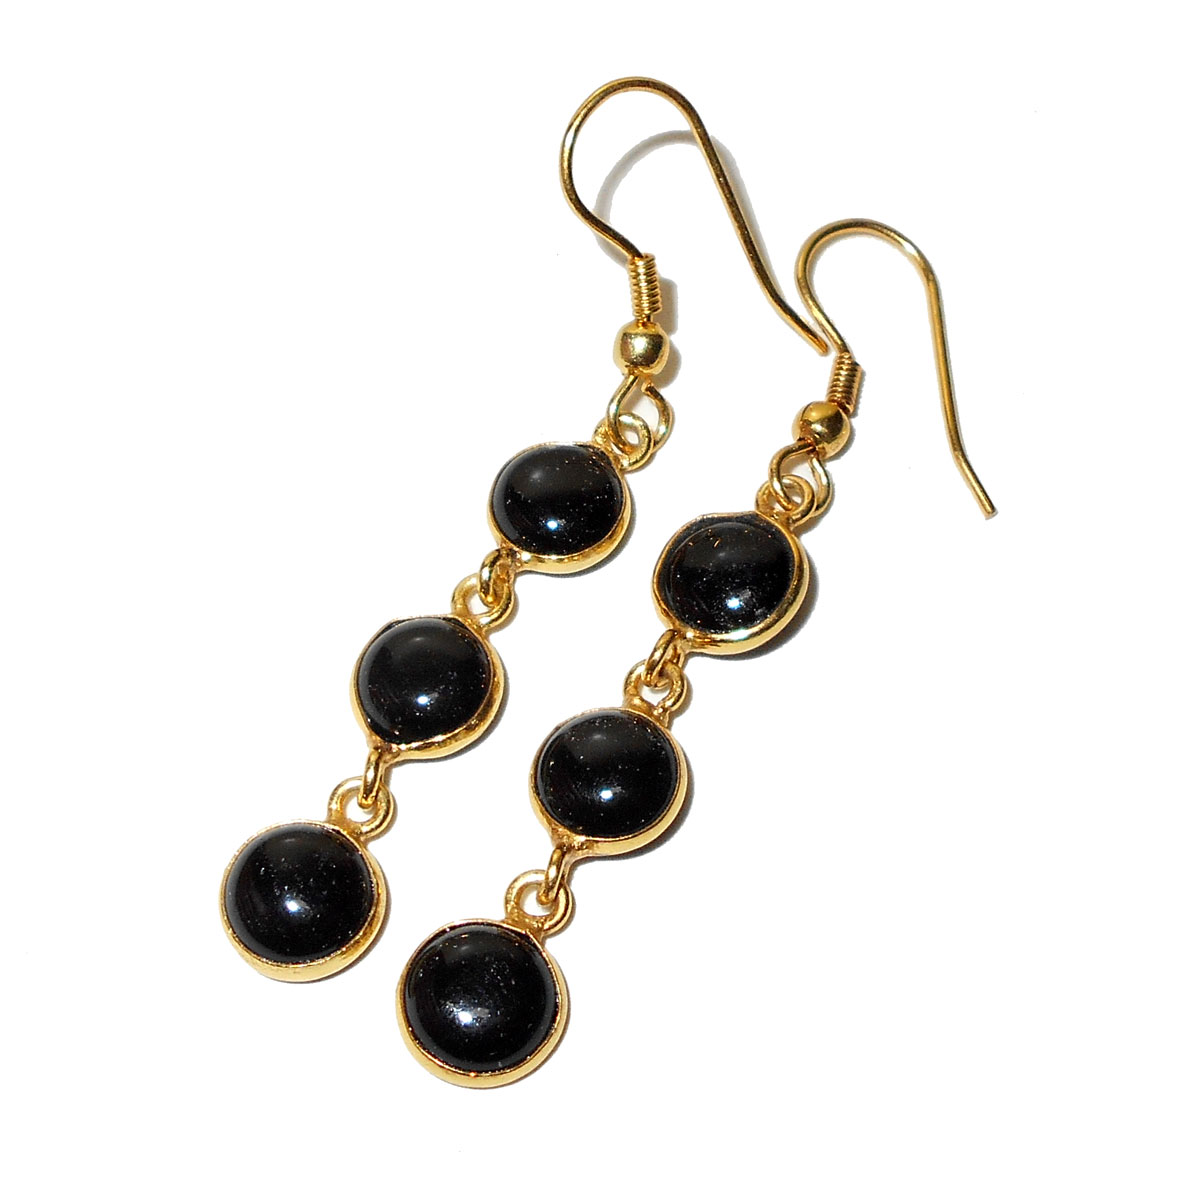 Black Onyx Cab F Bjs923 Glamour Fashion Earrings Gold Vermeil Costume